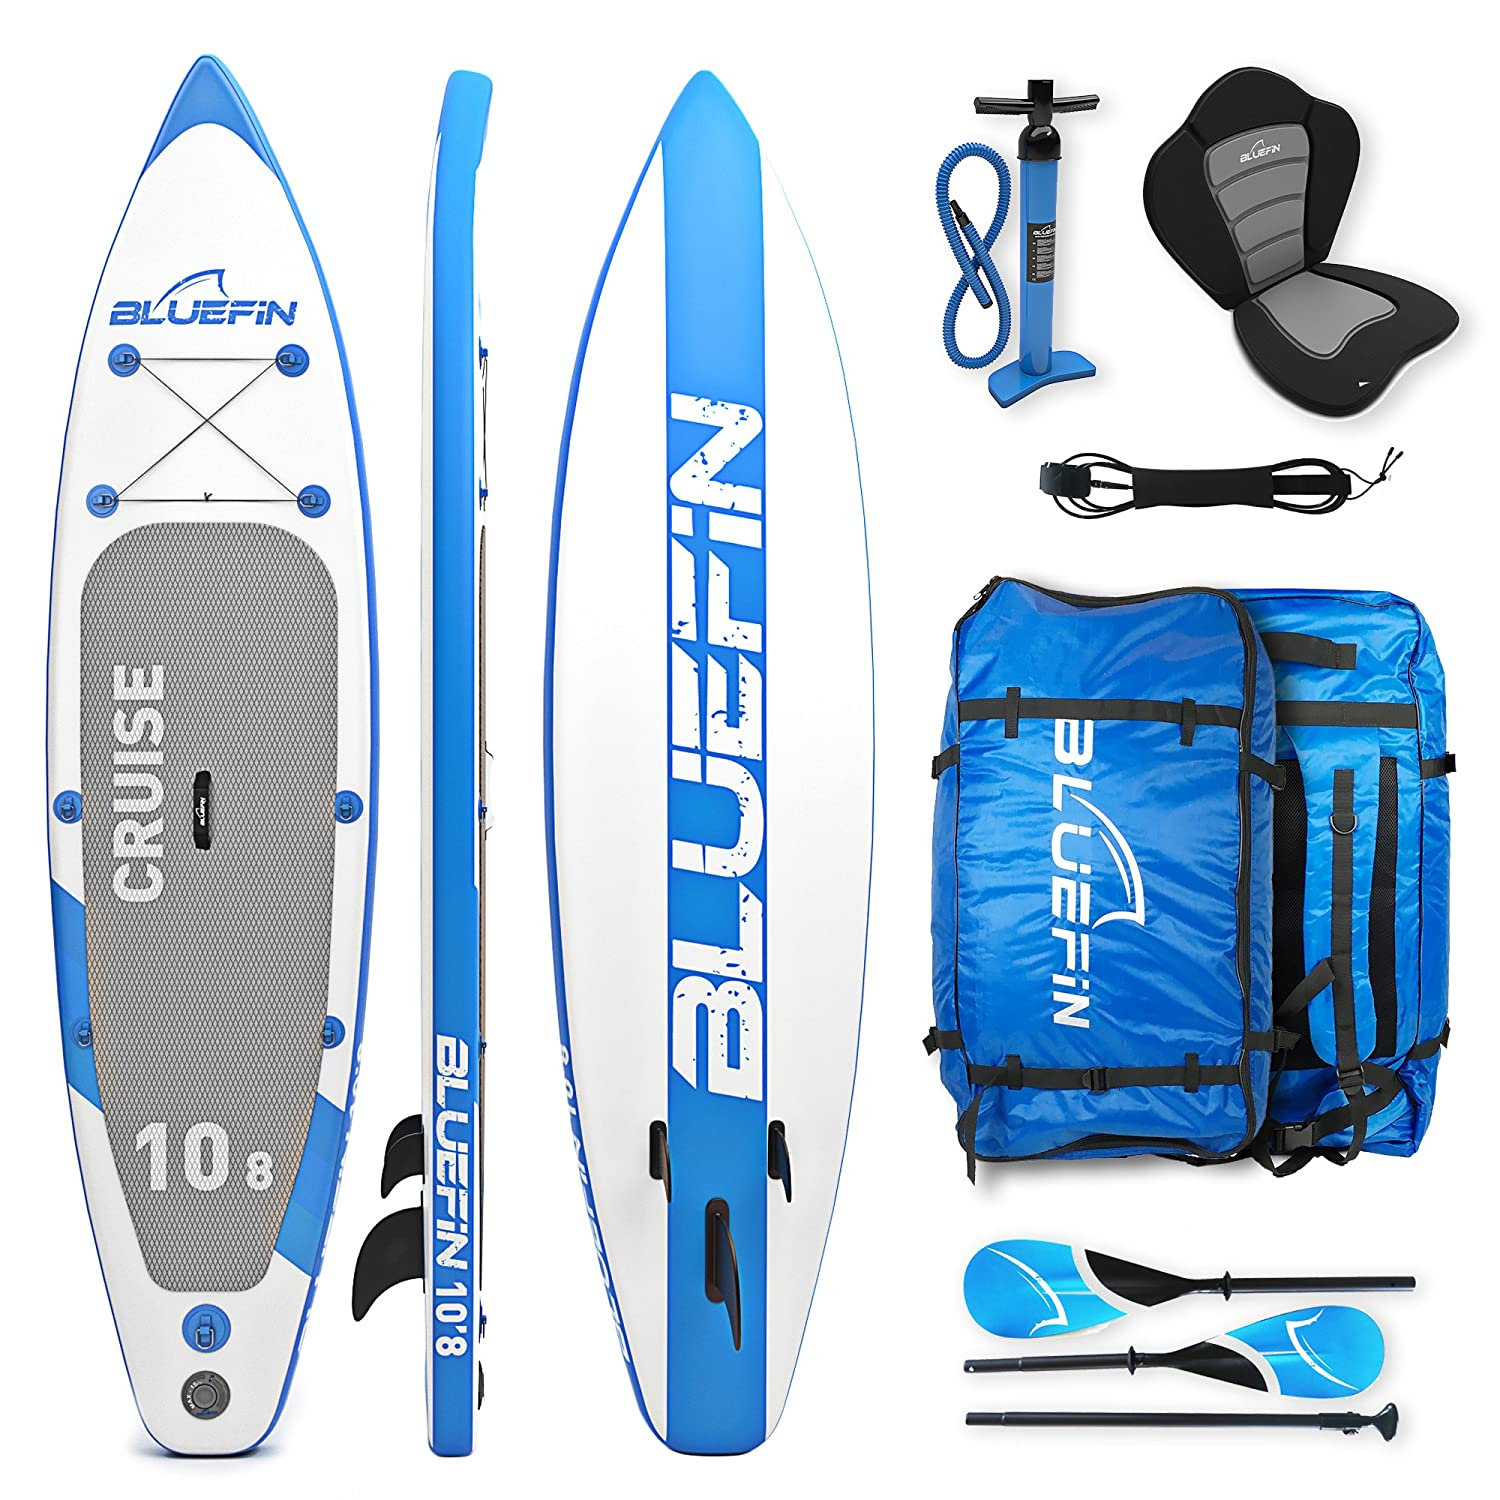 Great for Long-Distance Paddling - Bluefin Paddle Board